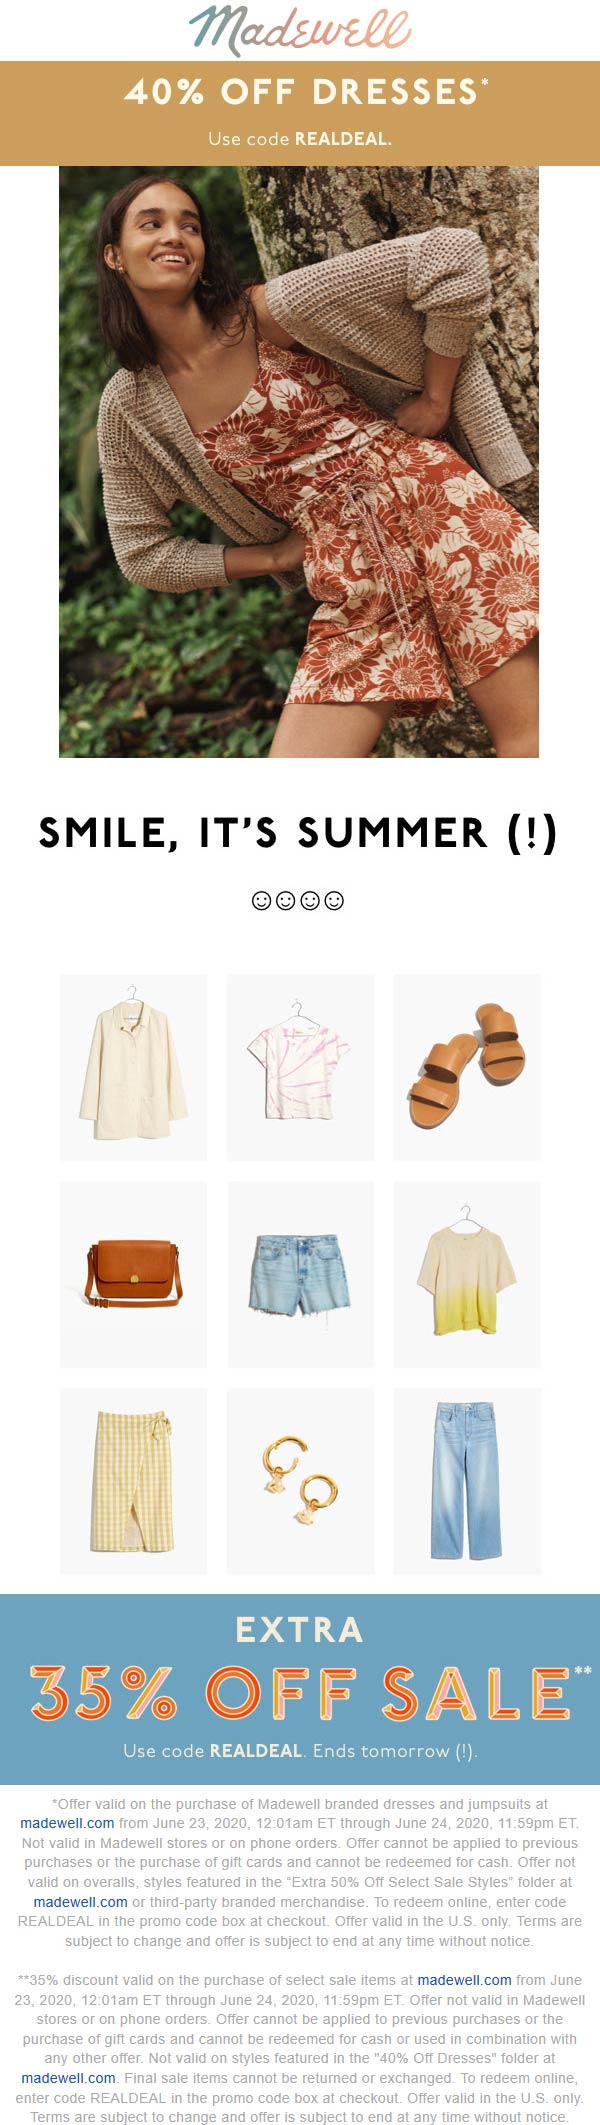 Extra 35% off sale items, 40% off dresses at Madewell via promo code REALDEAL #madewell